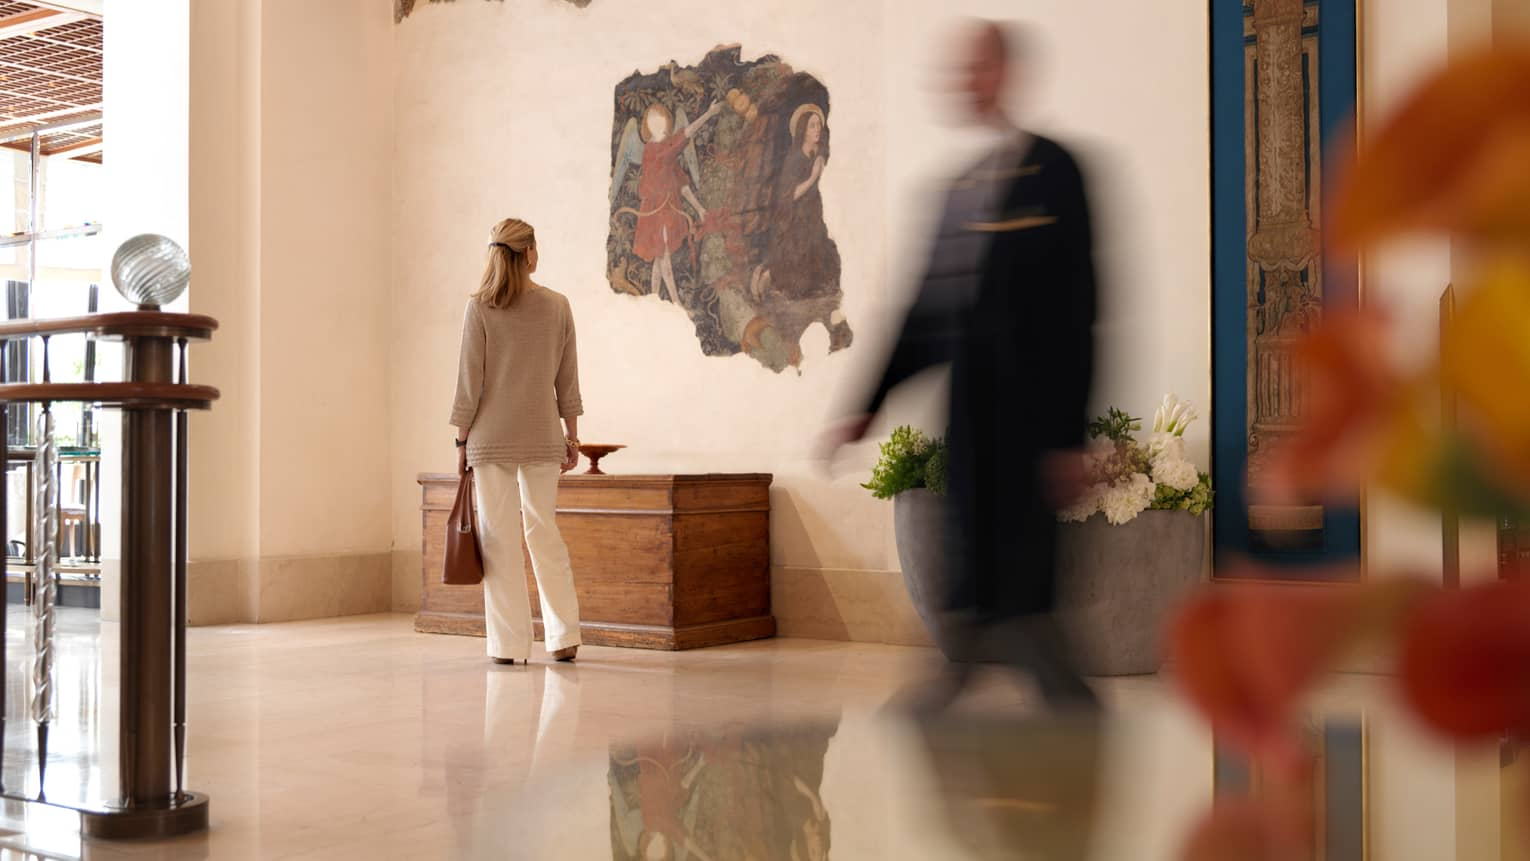 Woman holds purse, looks at angel mural in hotel lobby halls